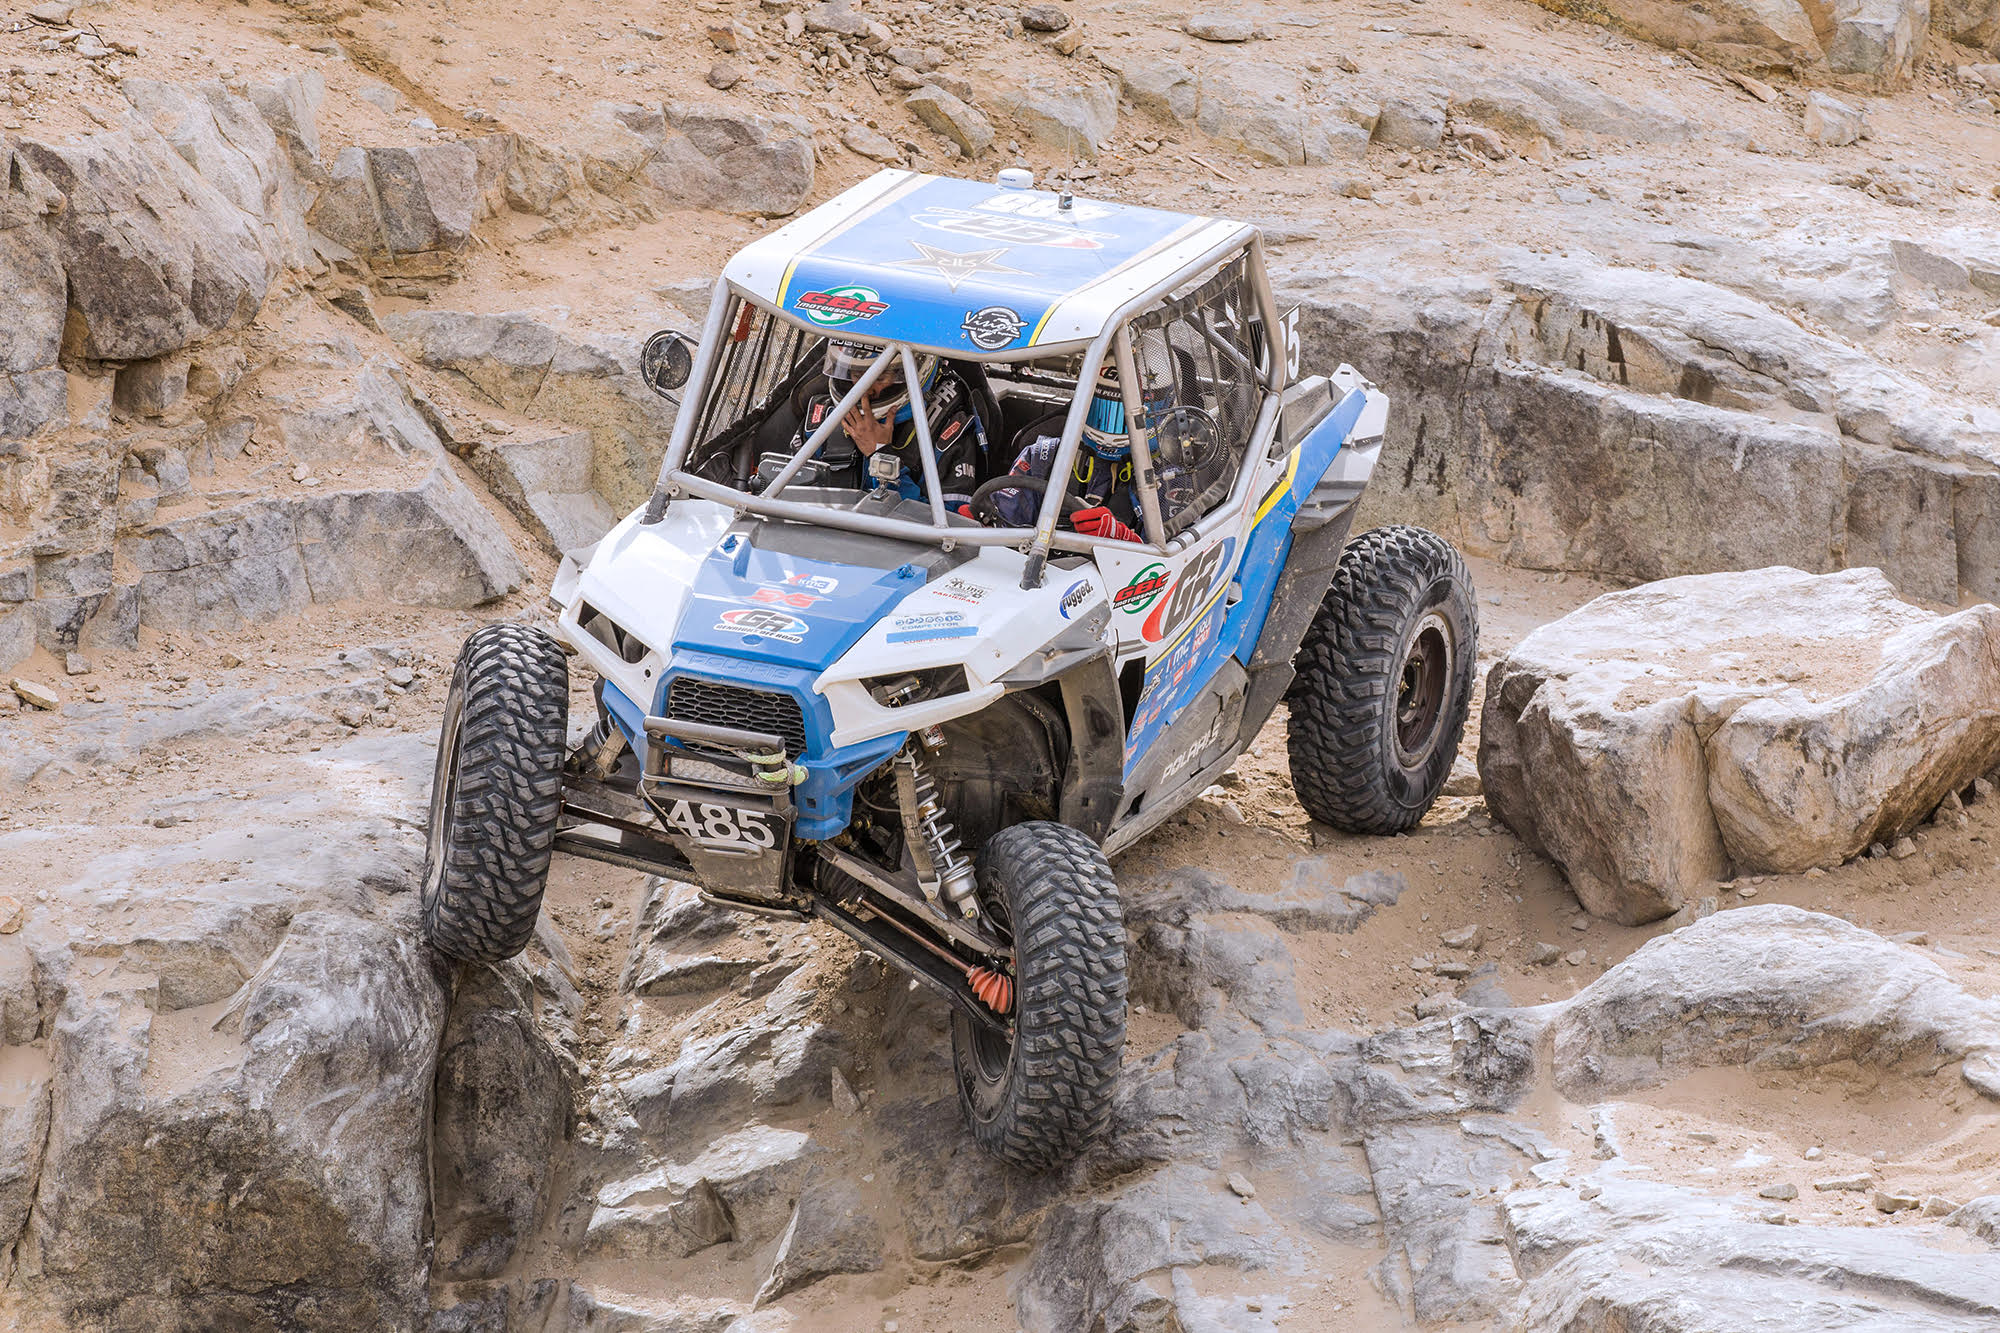 Jamie Pellegrino takes his RZR down the rocks at King of the Hammers